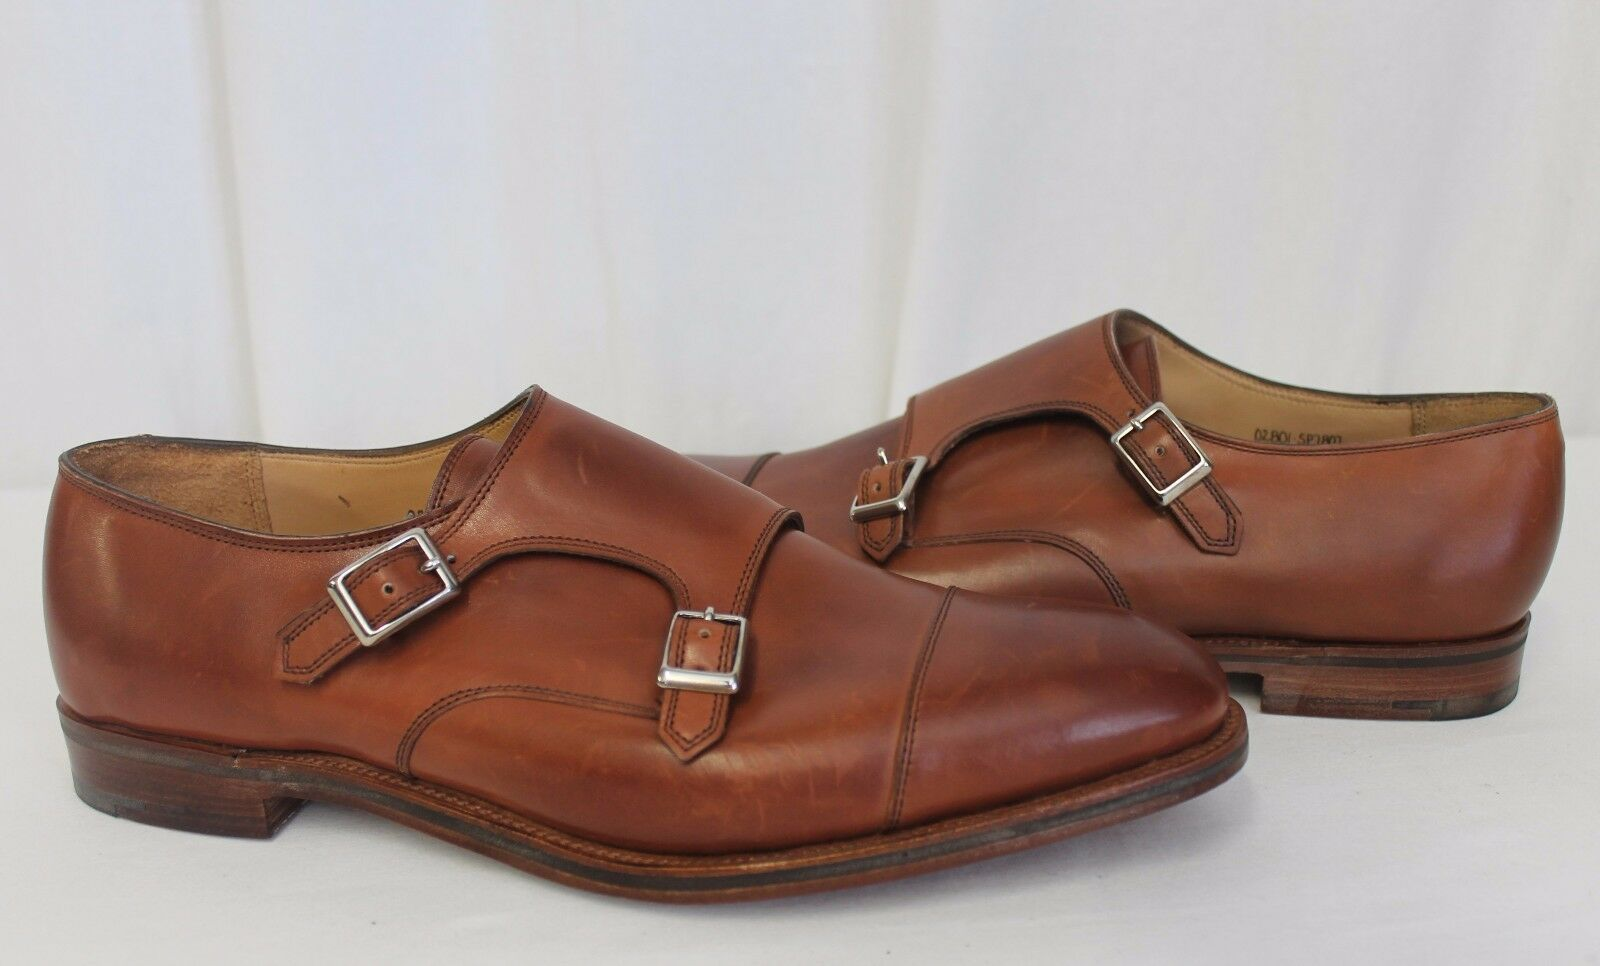 Alfred Sargent For J.Crew Double Monk Strap Scarpe Loafers Mahogany marrone 12  525